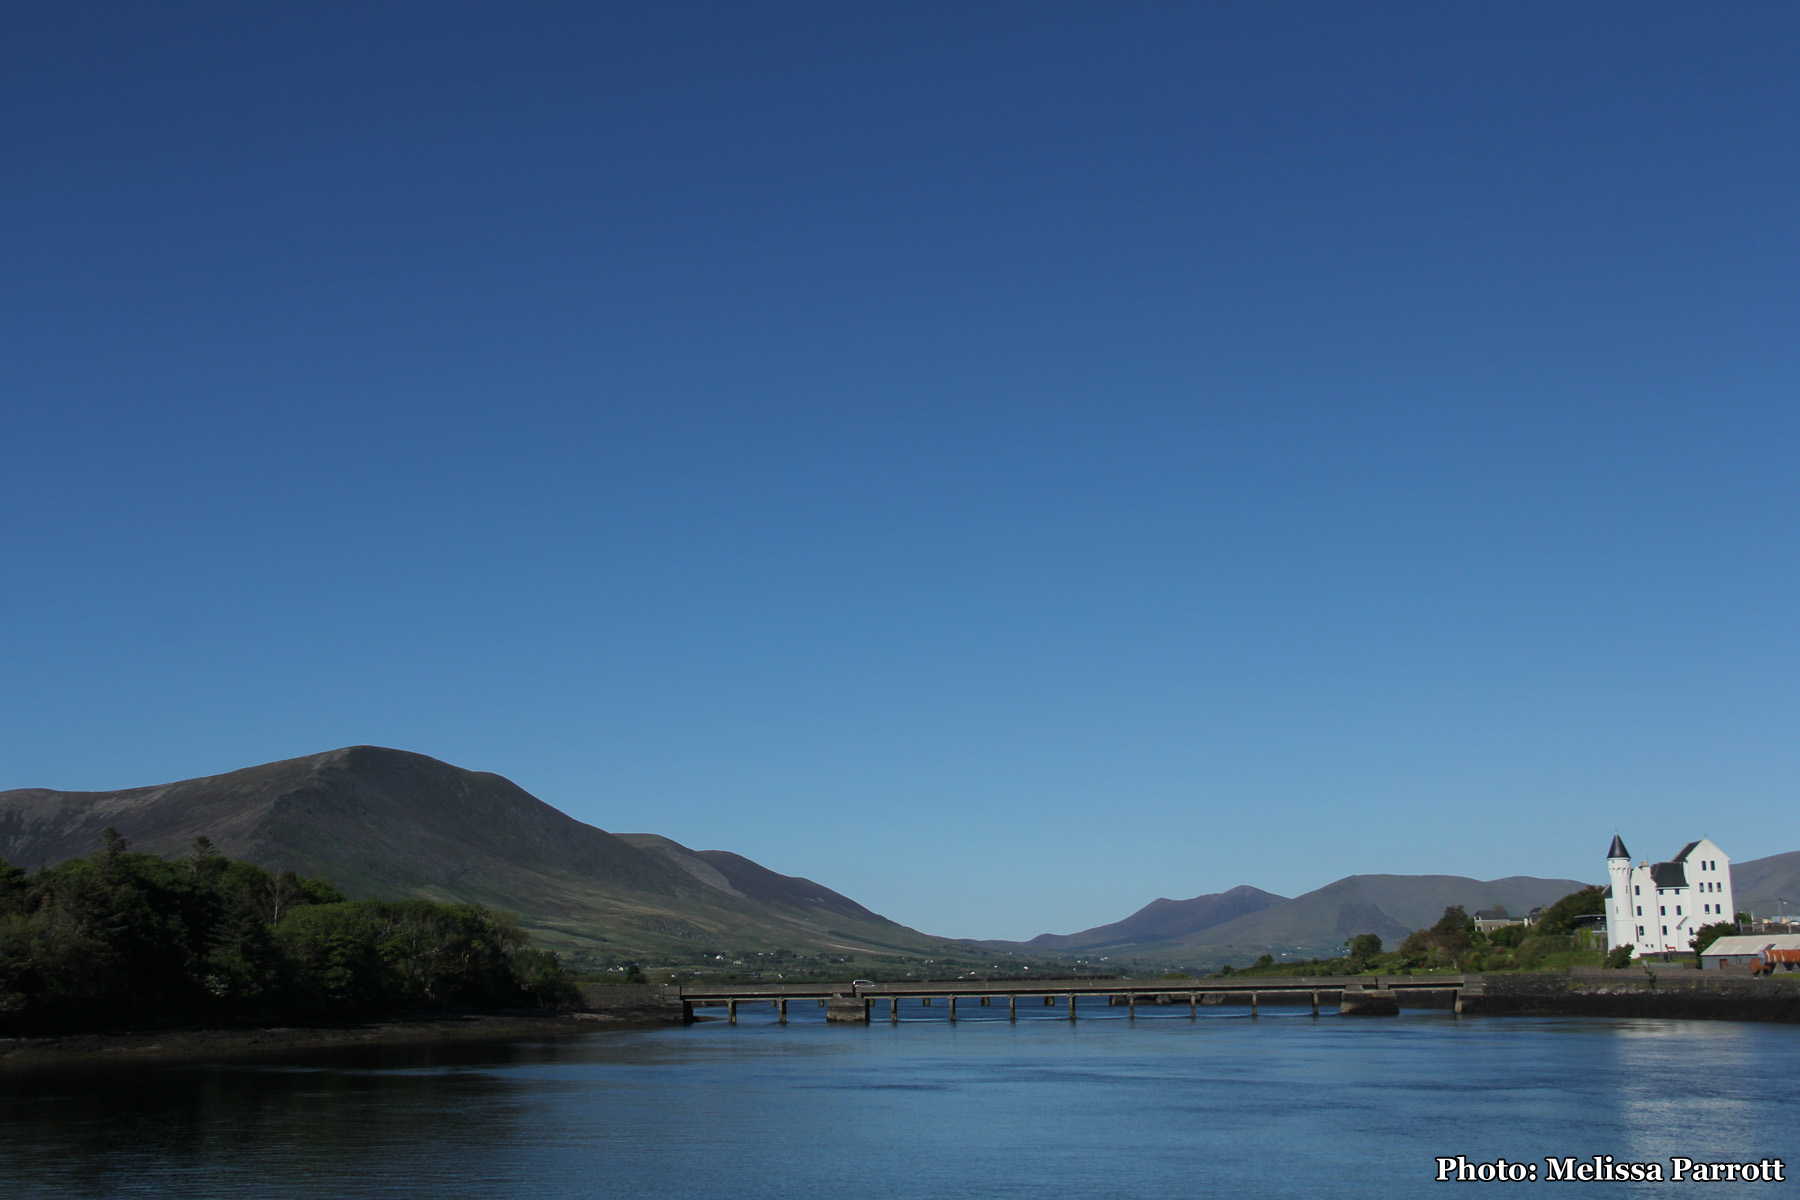 Looking back at the River Fertha and The Old Barracks (Cahersiveen)